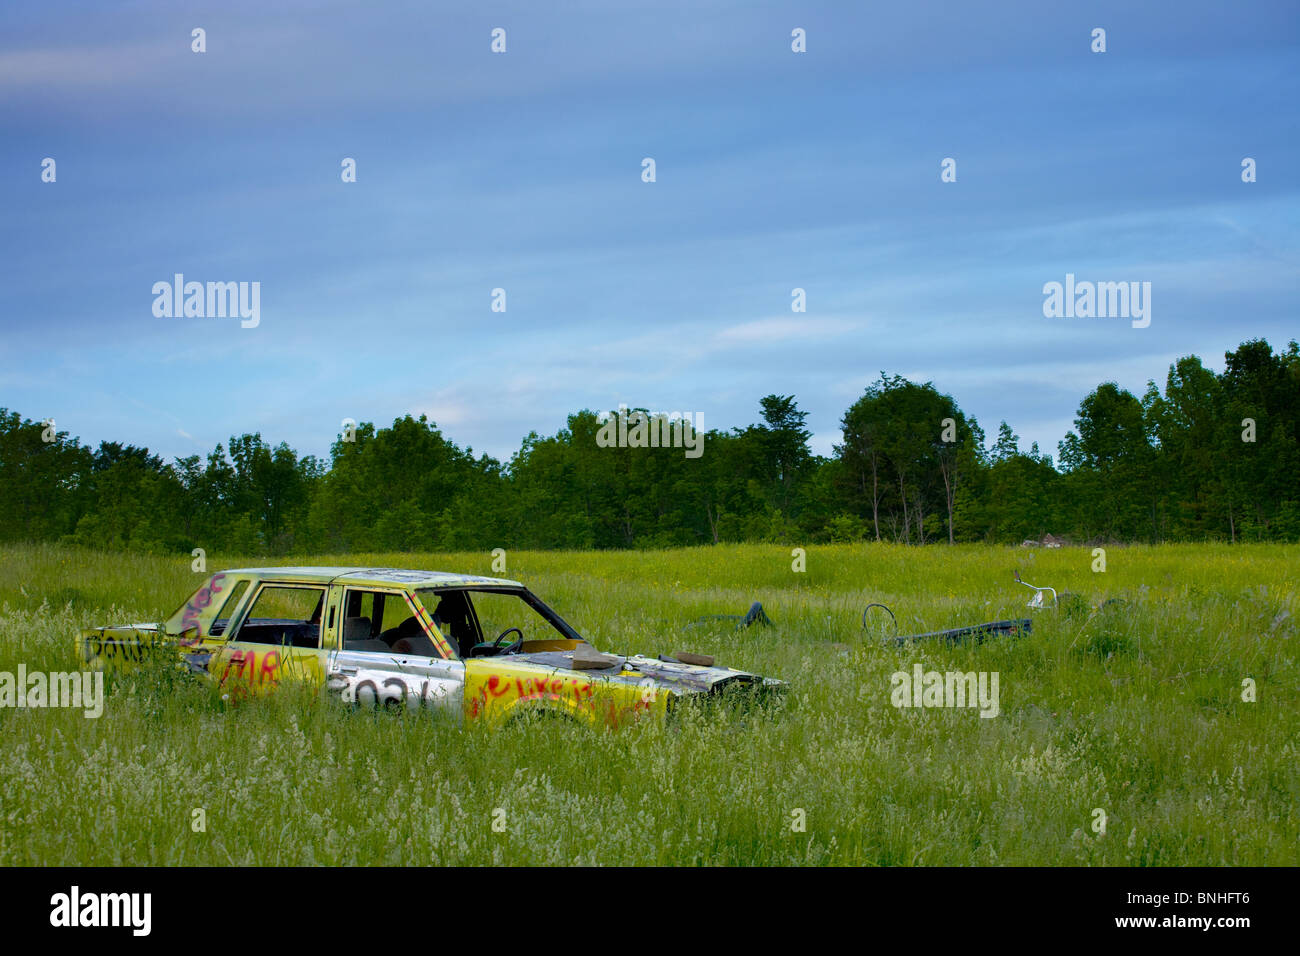 Demolition car rusting in field in Schoharie Valley, New York State - Stock Image